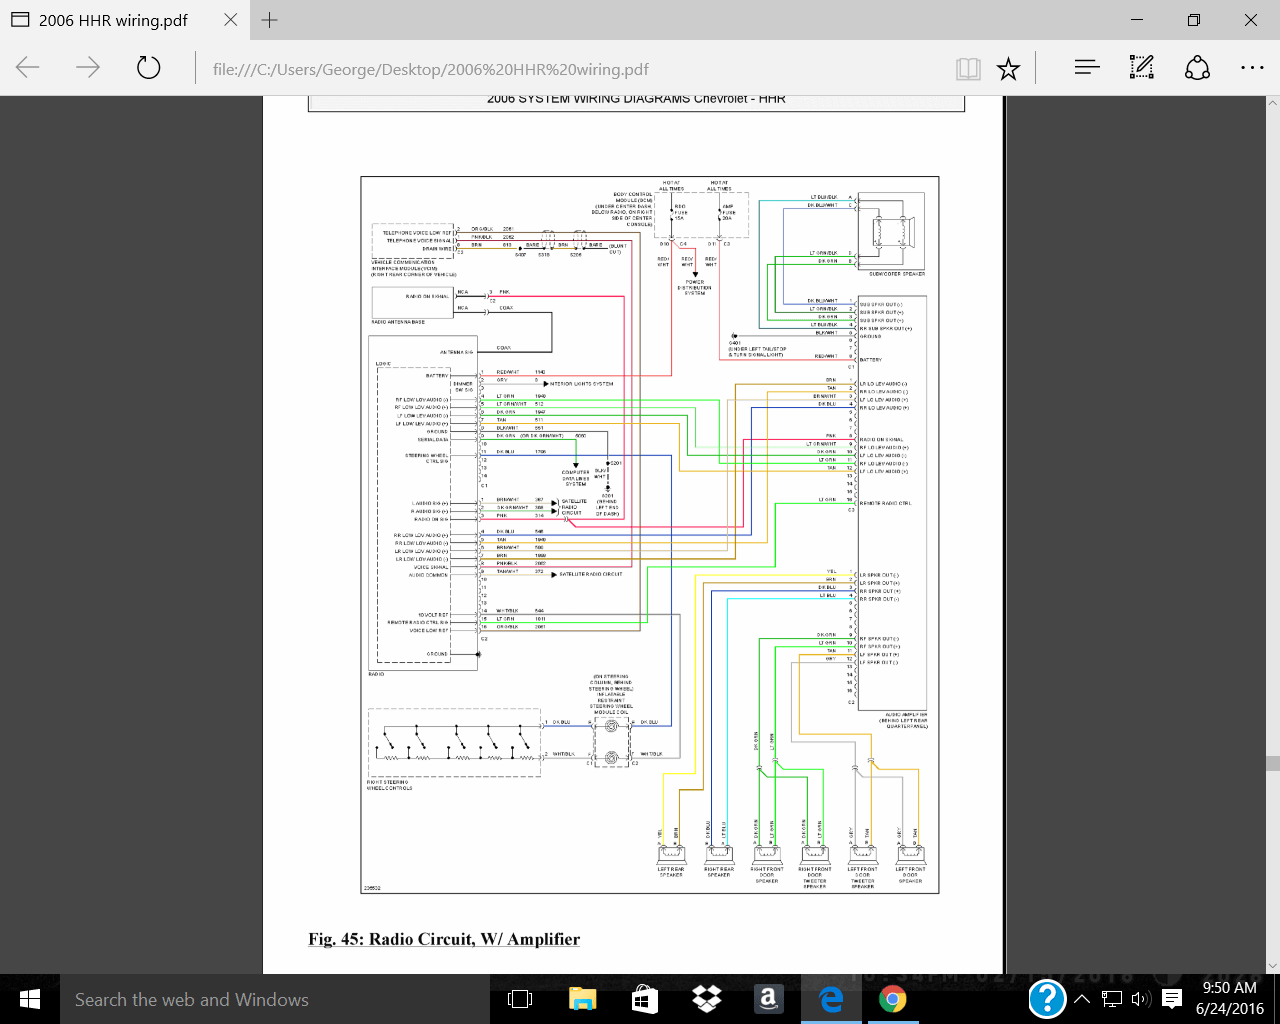 hight resolution of 2010 chevy hhr stereo wiring diagram screenshot 4 png